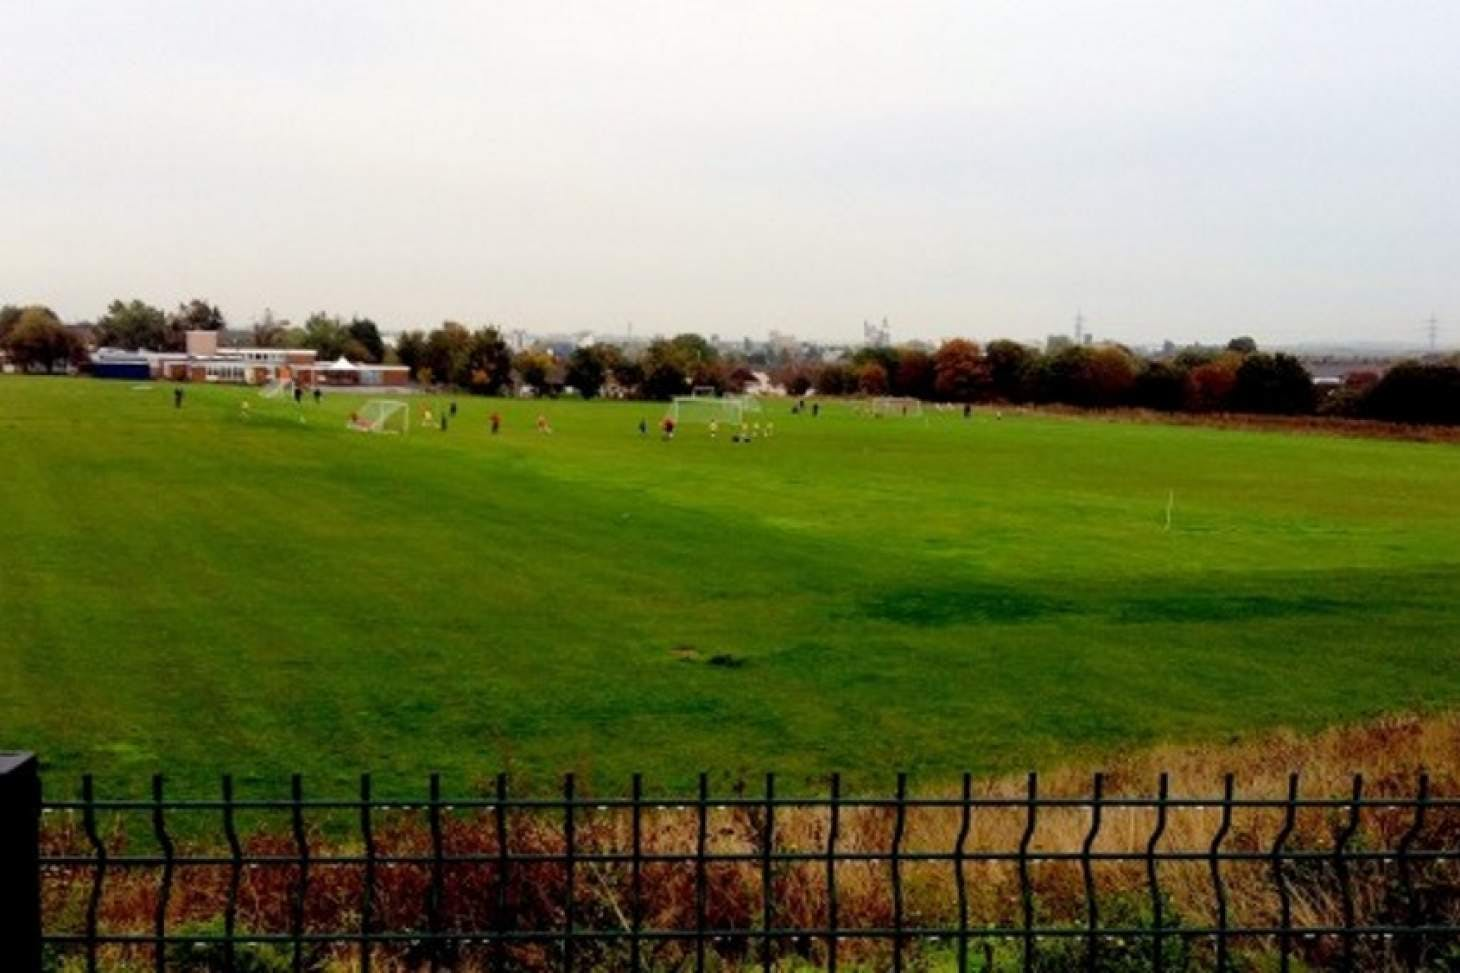 St John's Catholic Comprehensive School 11 a side | Grass football pitch